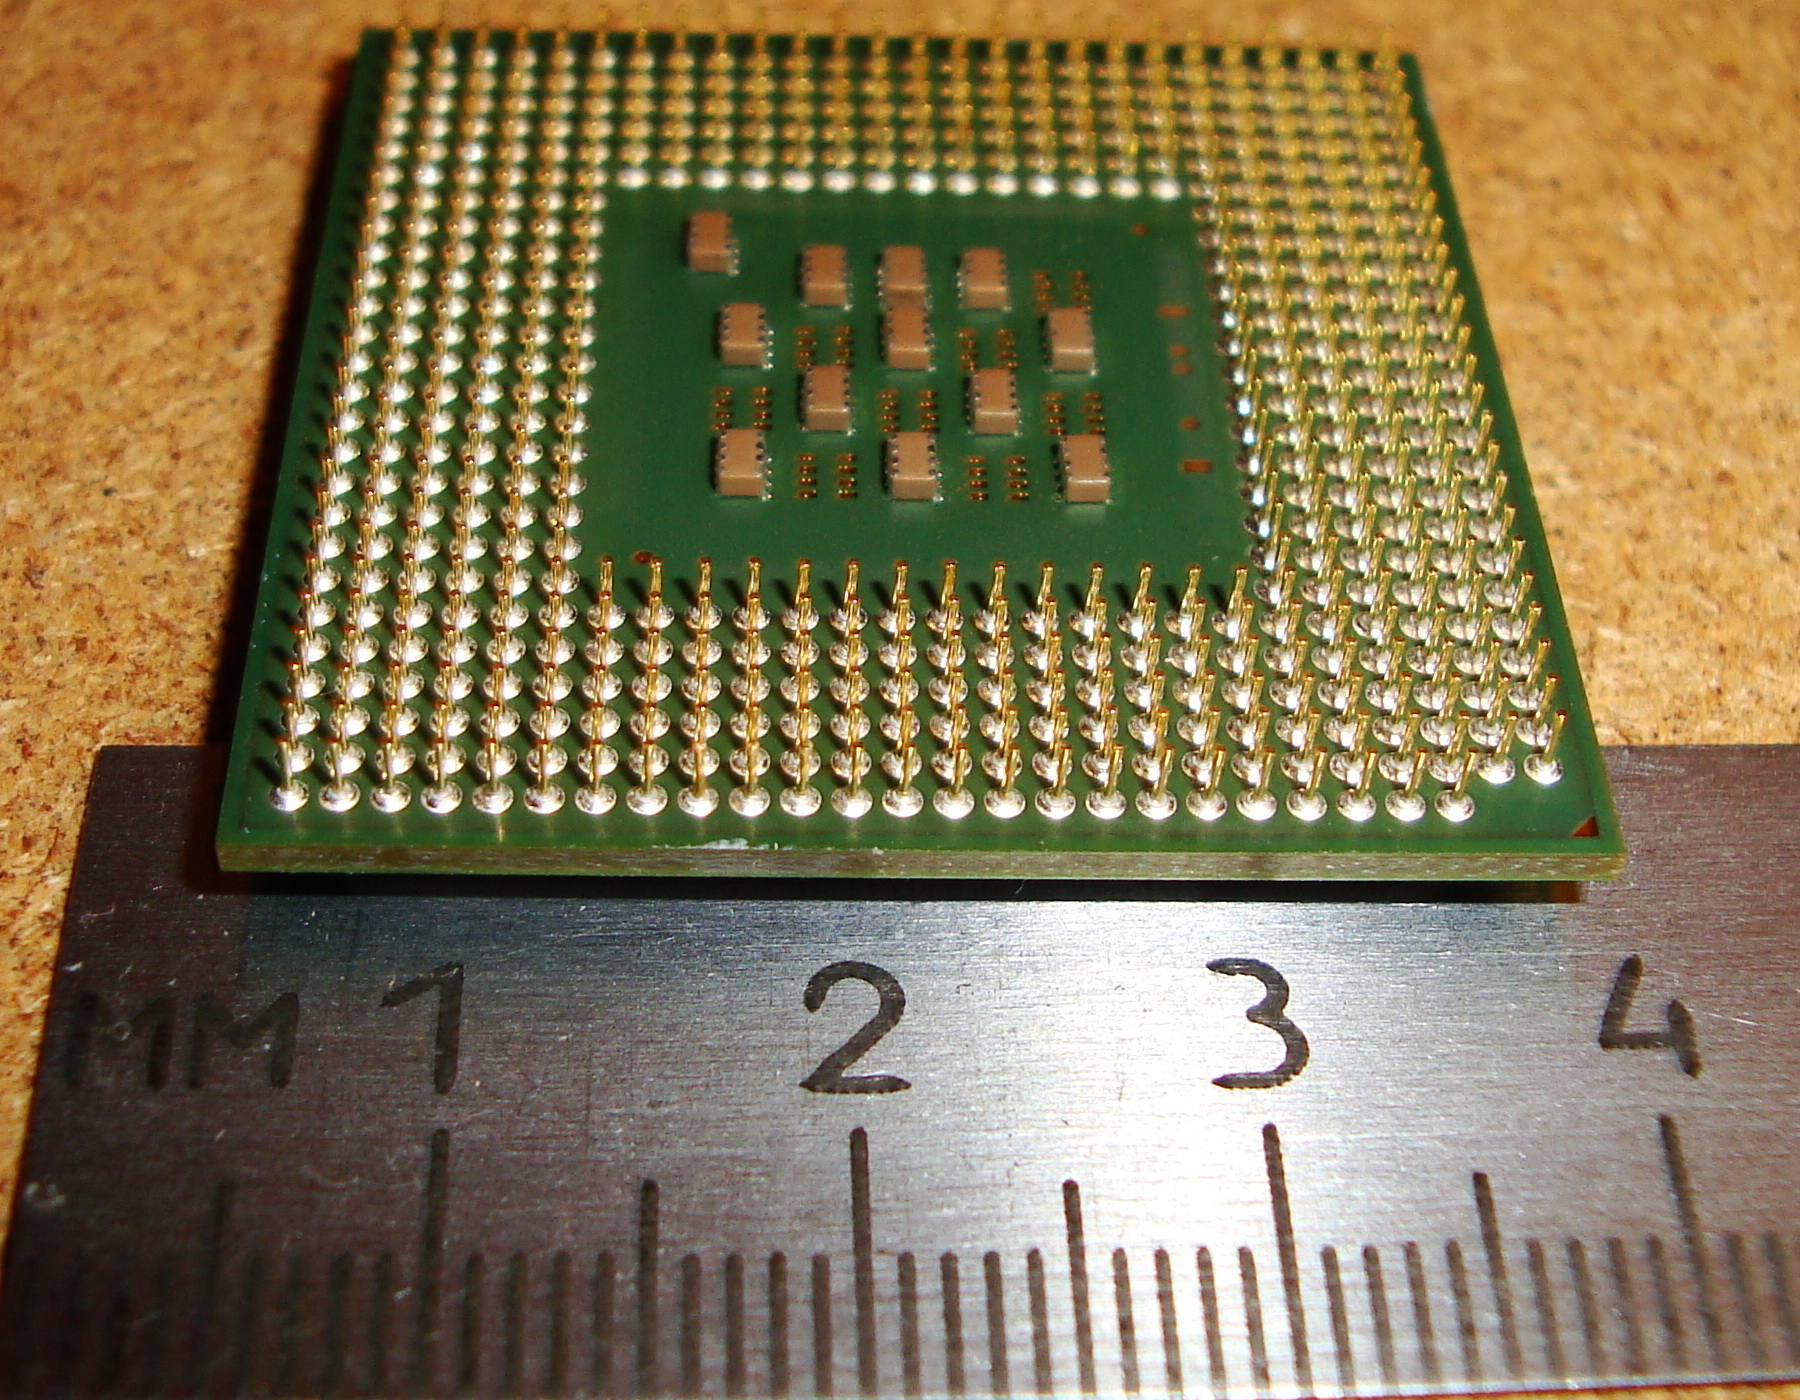 File:Intel Pentium 4 SL9PC Socket 478, bottom side.JPG